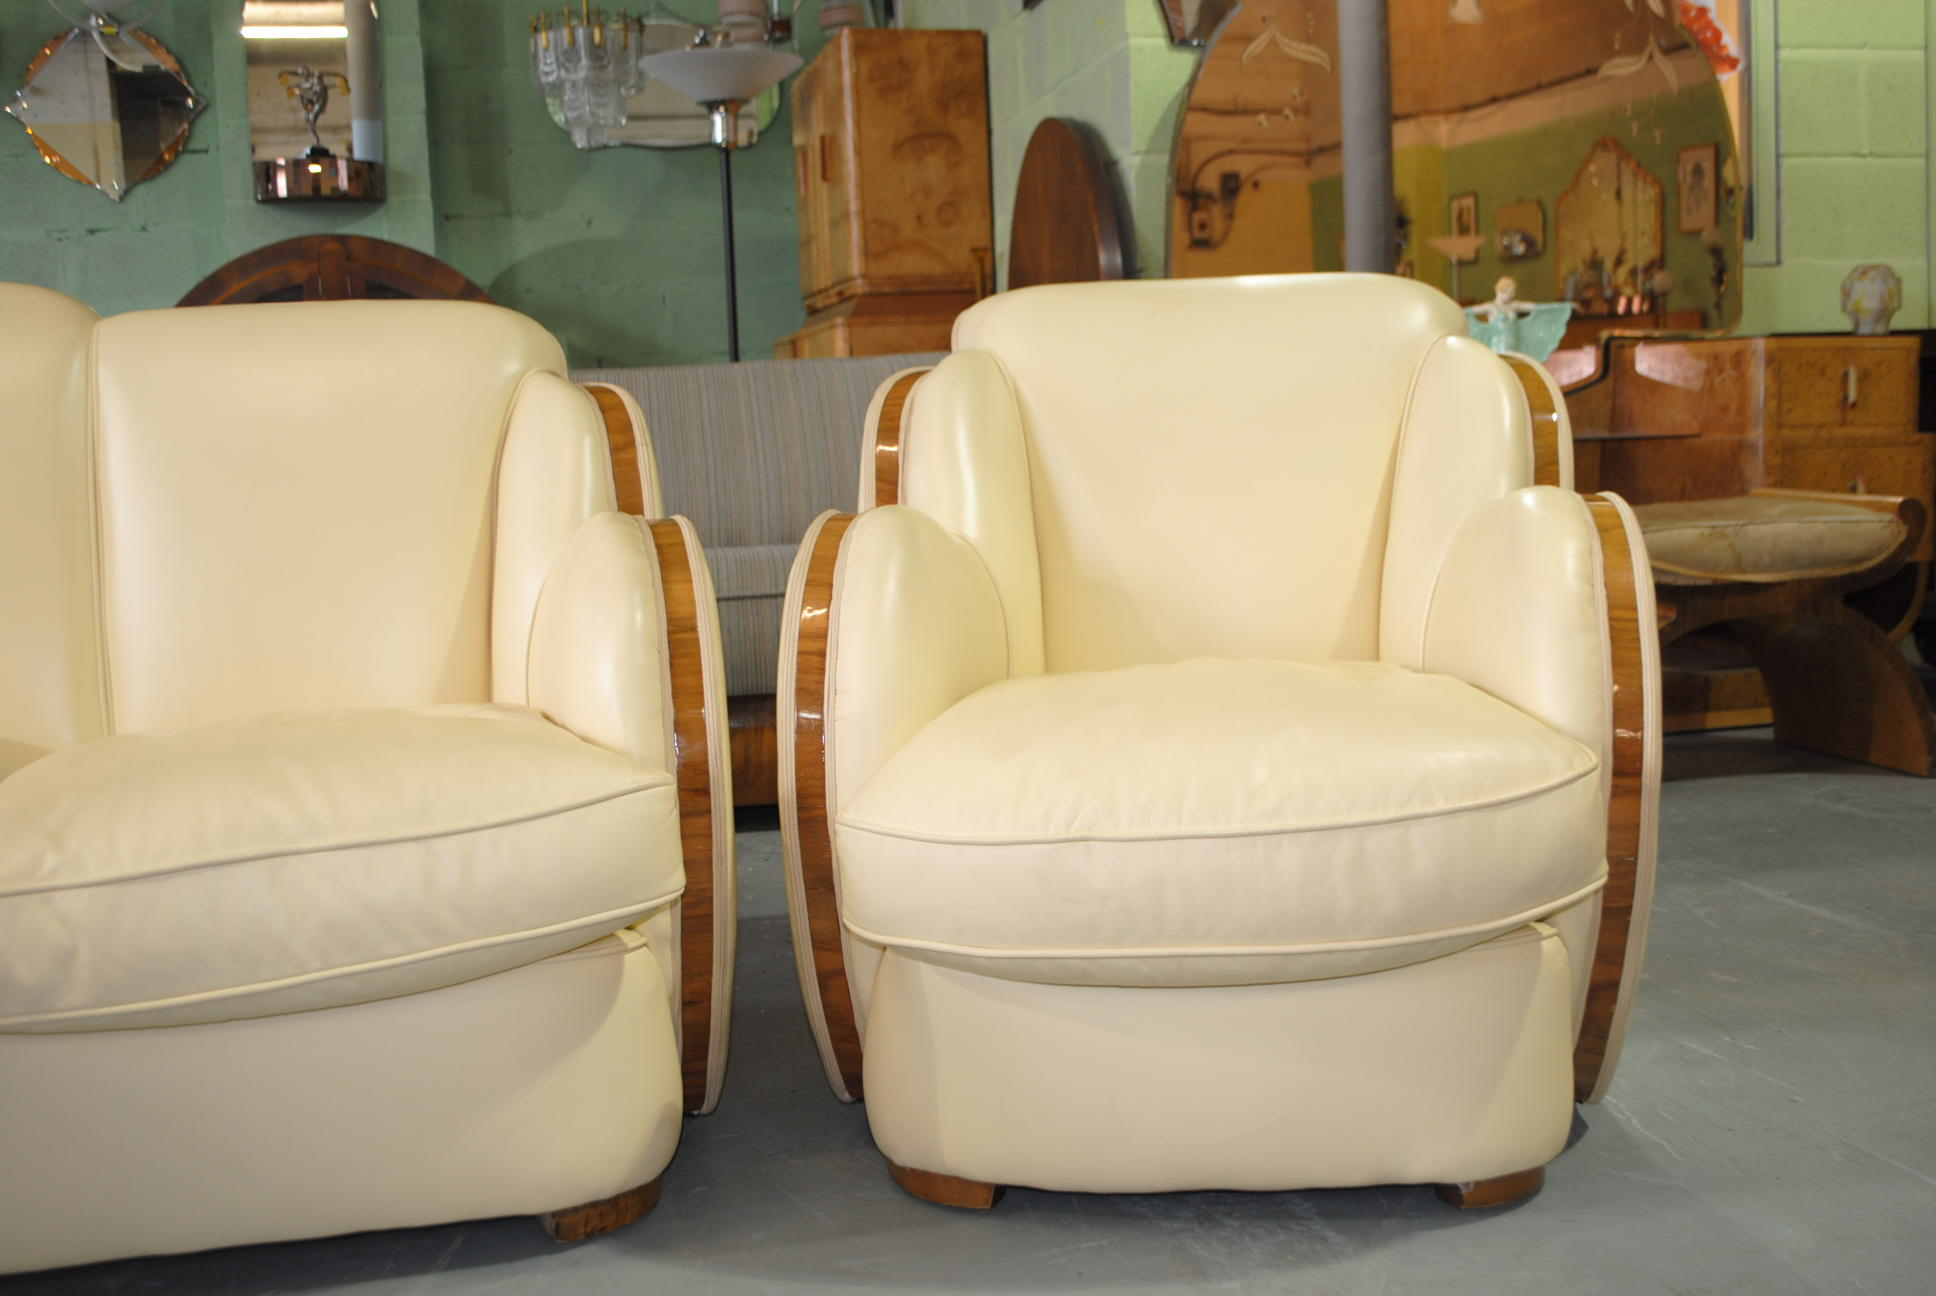 Art deco epstein 3 piece cloudback suite cloud 9 art deco furniture sales - Epstein art deco furniture ...